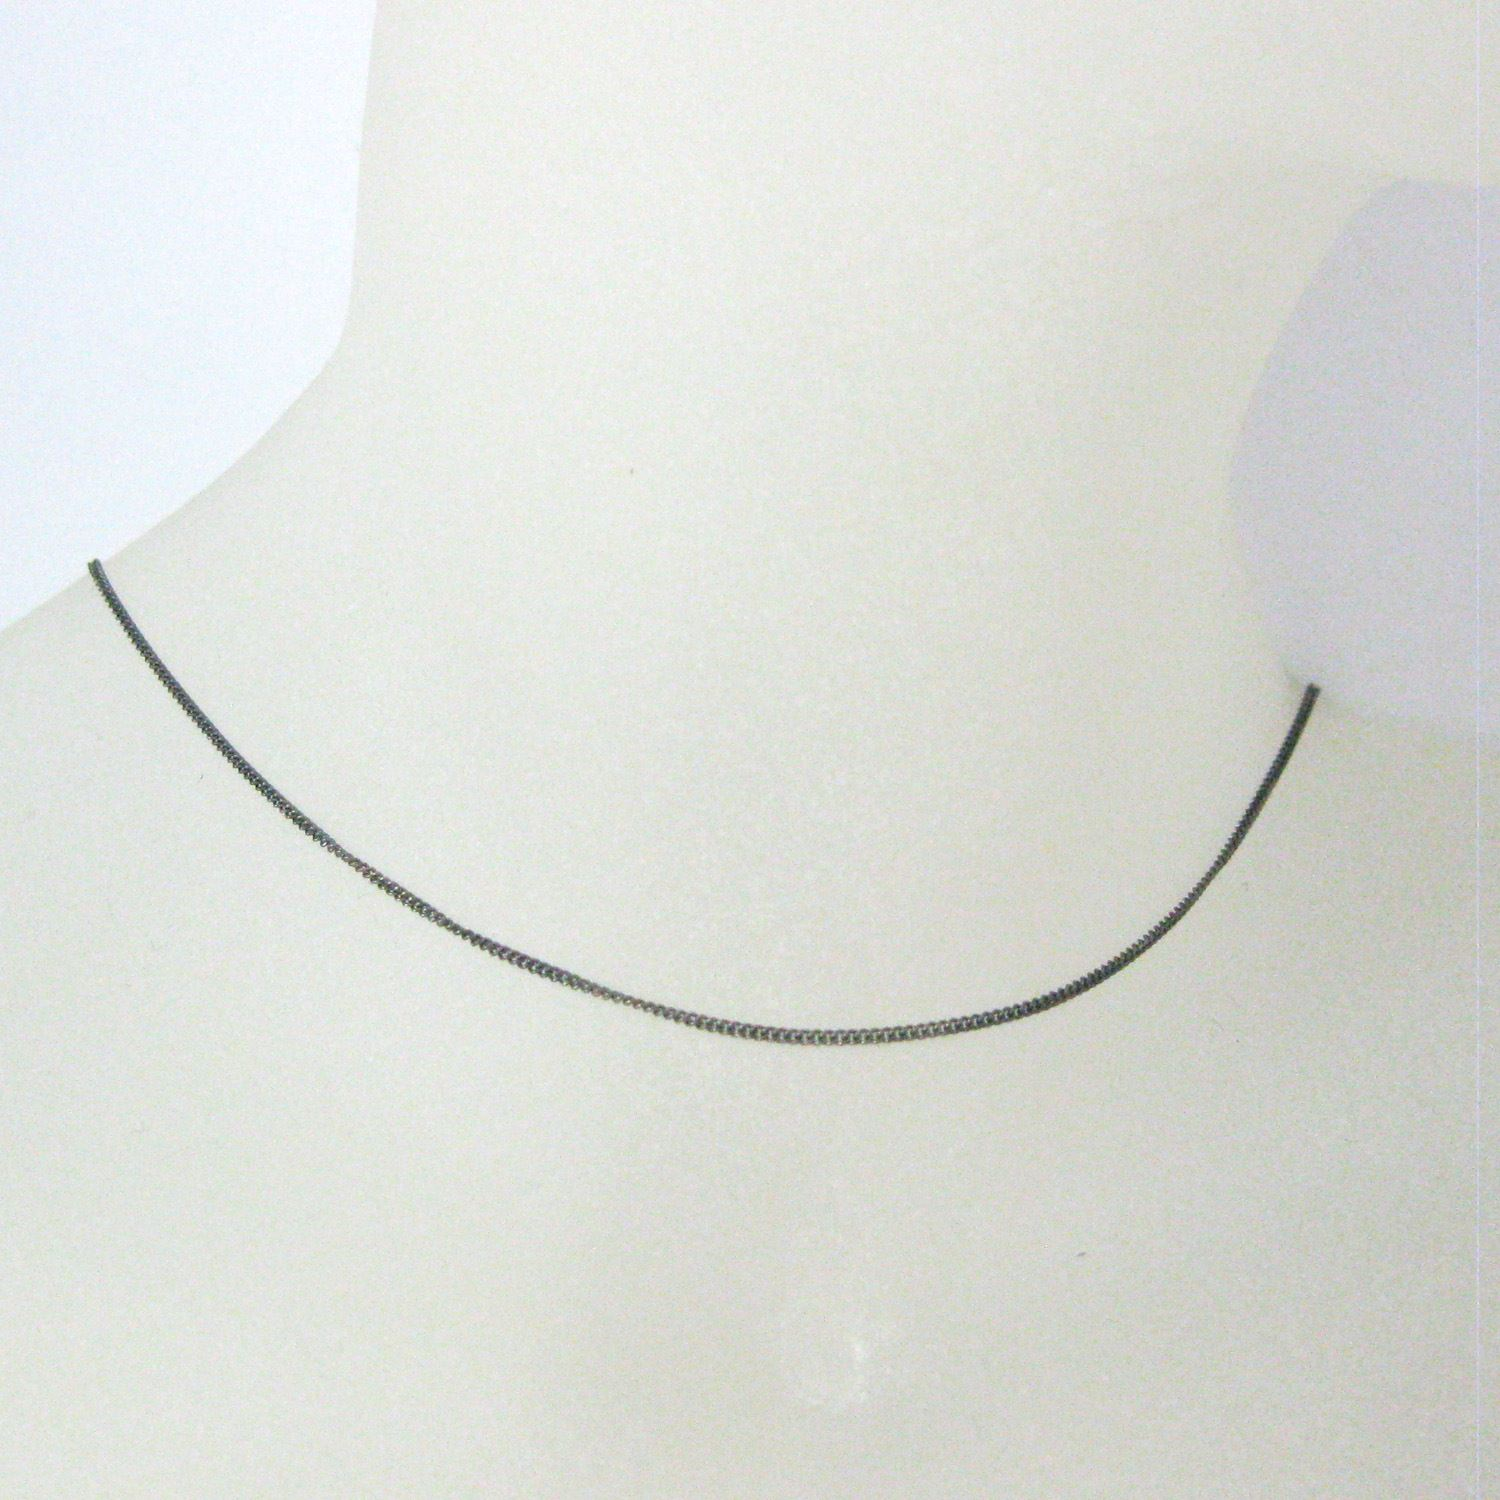 Oxidized Sterling Silver Necklace Chain- Tiny Curb Chain- Long Necklace - All Sizes